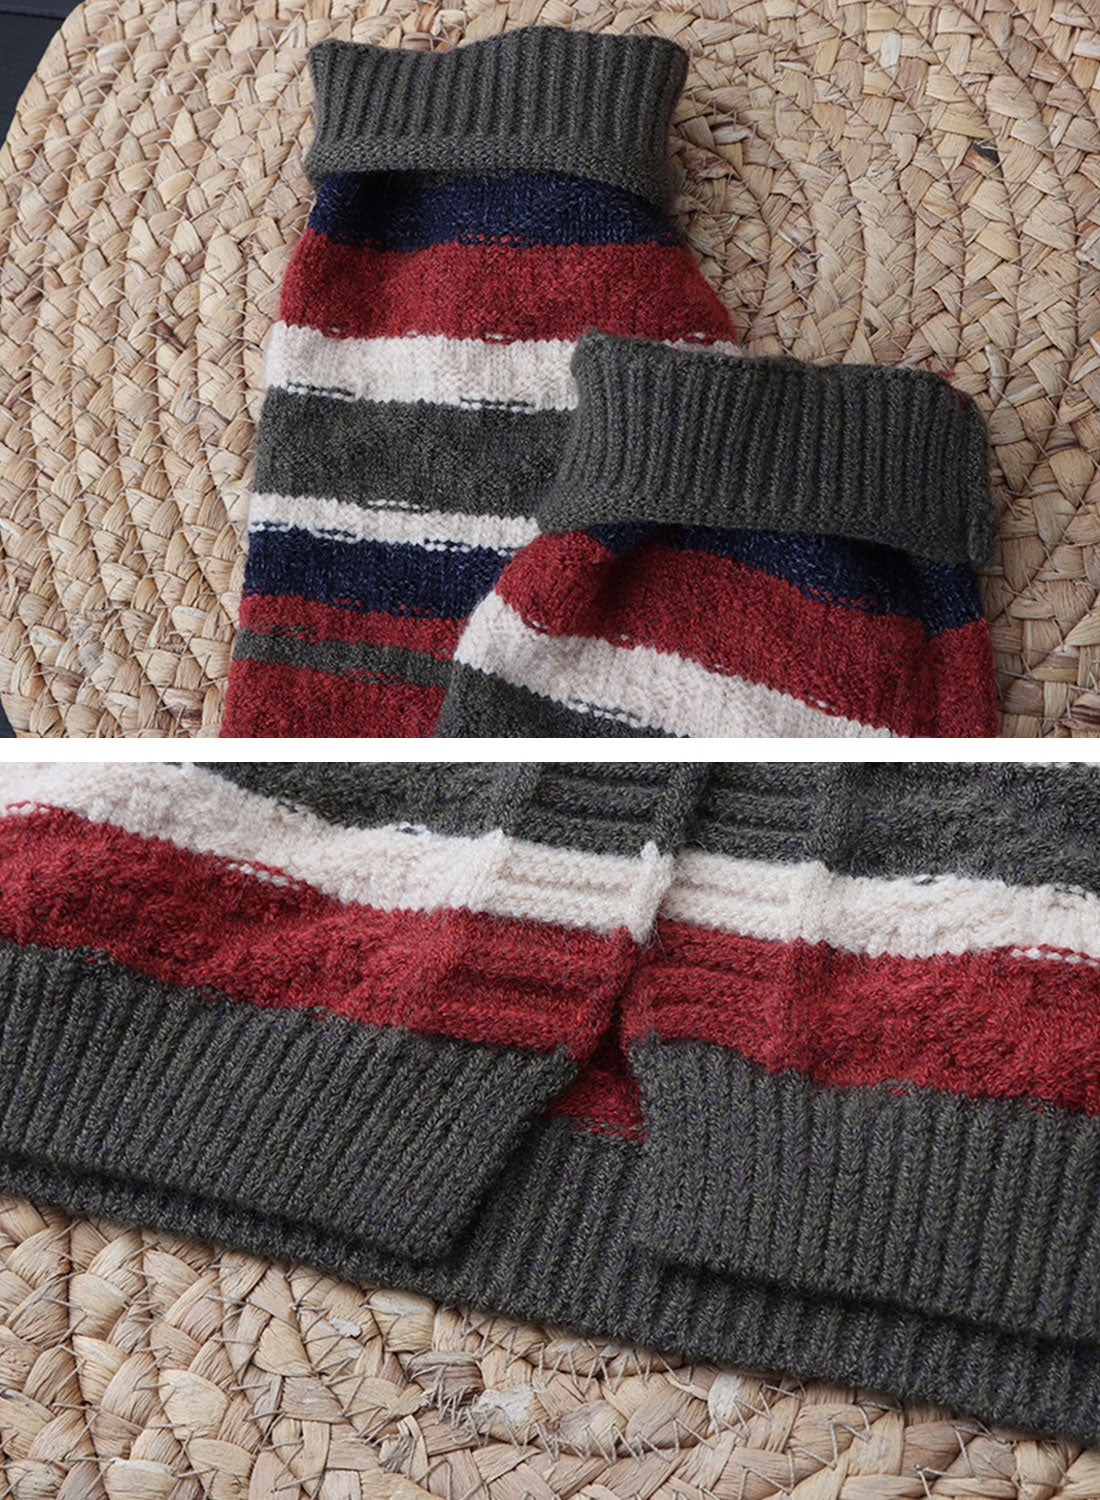 Color Block Striped Long Cardigan Sweater Details 2